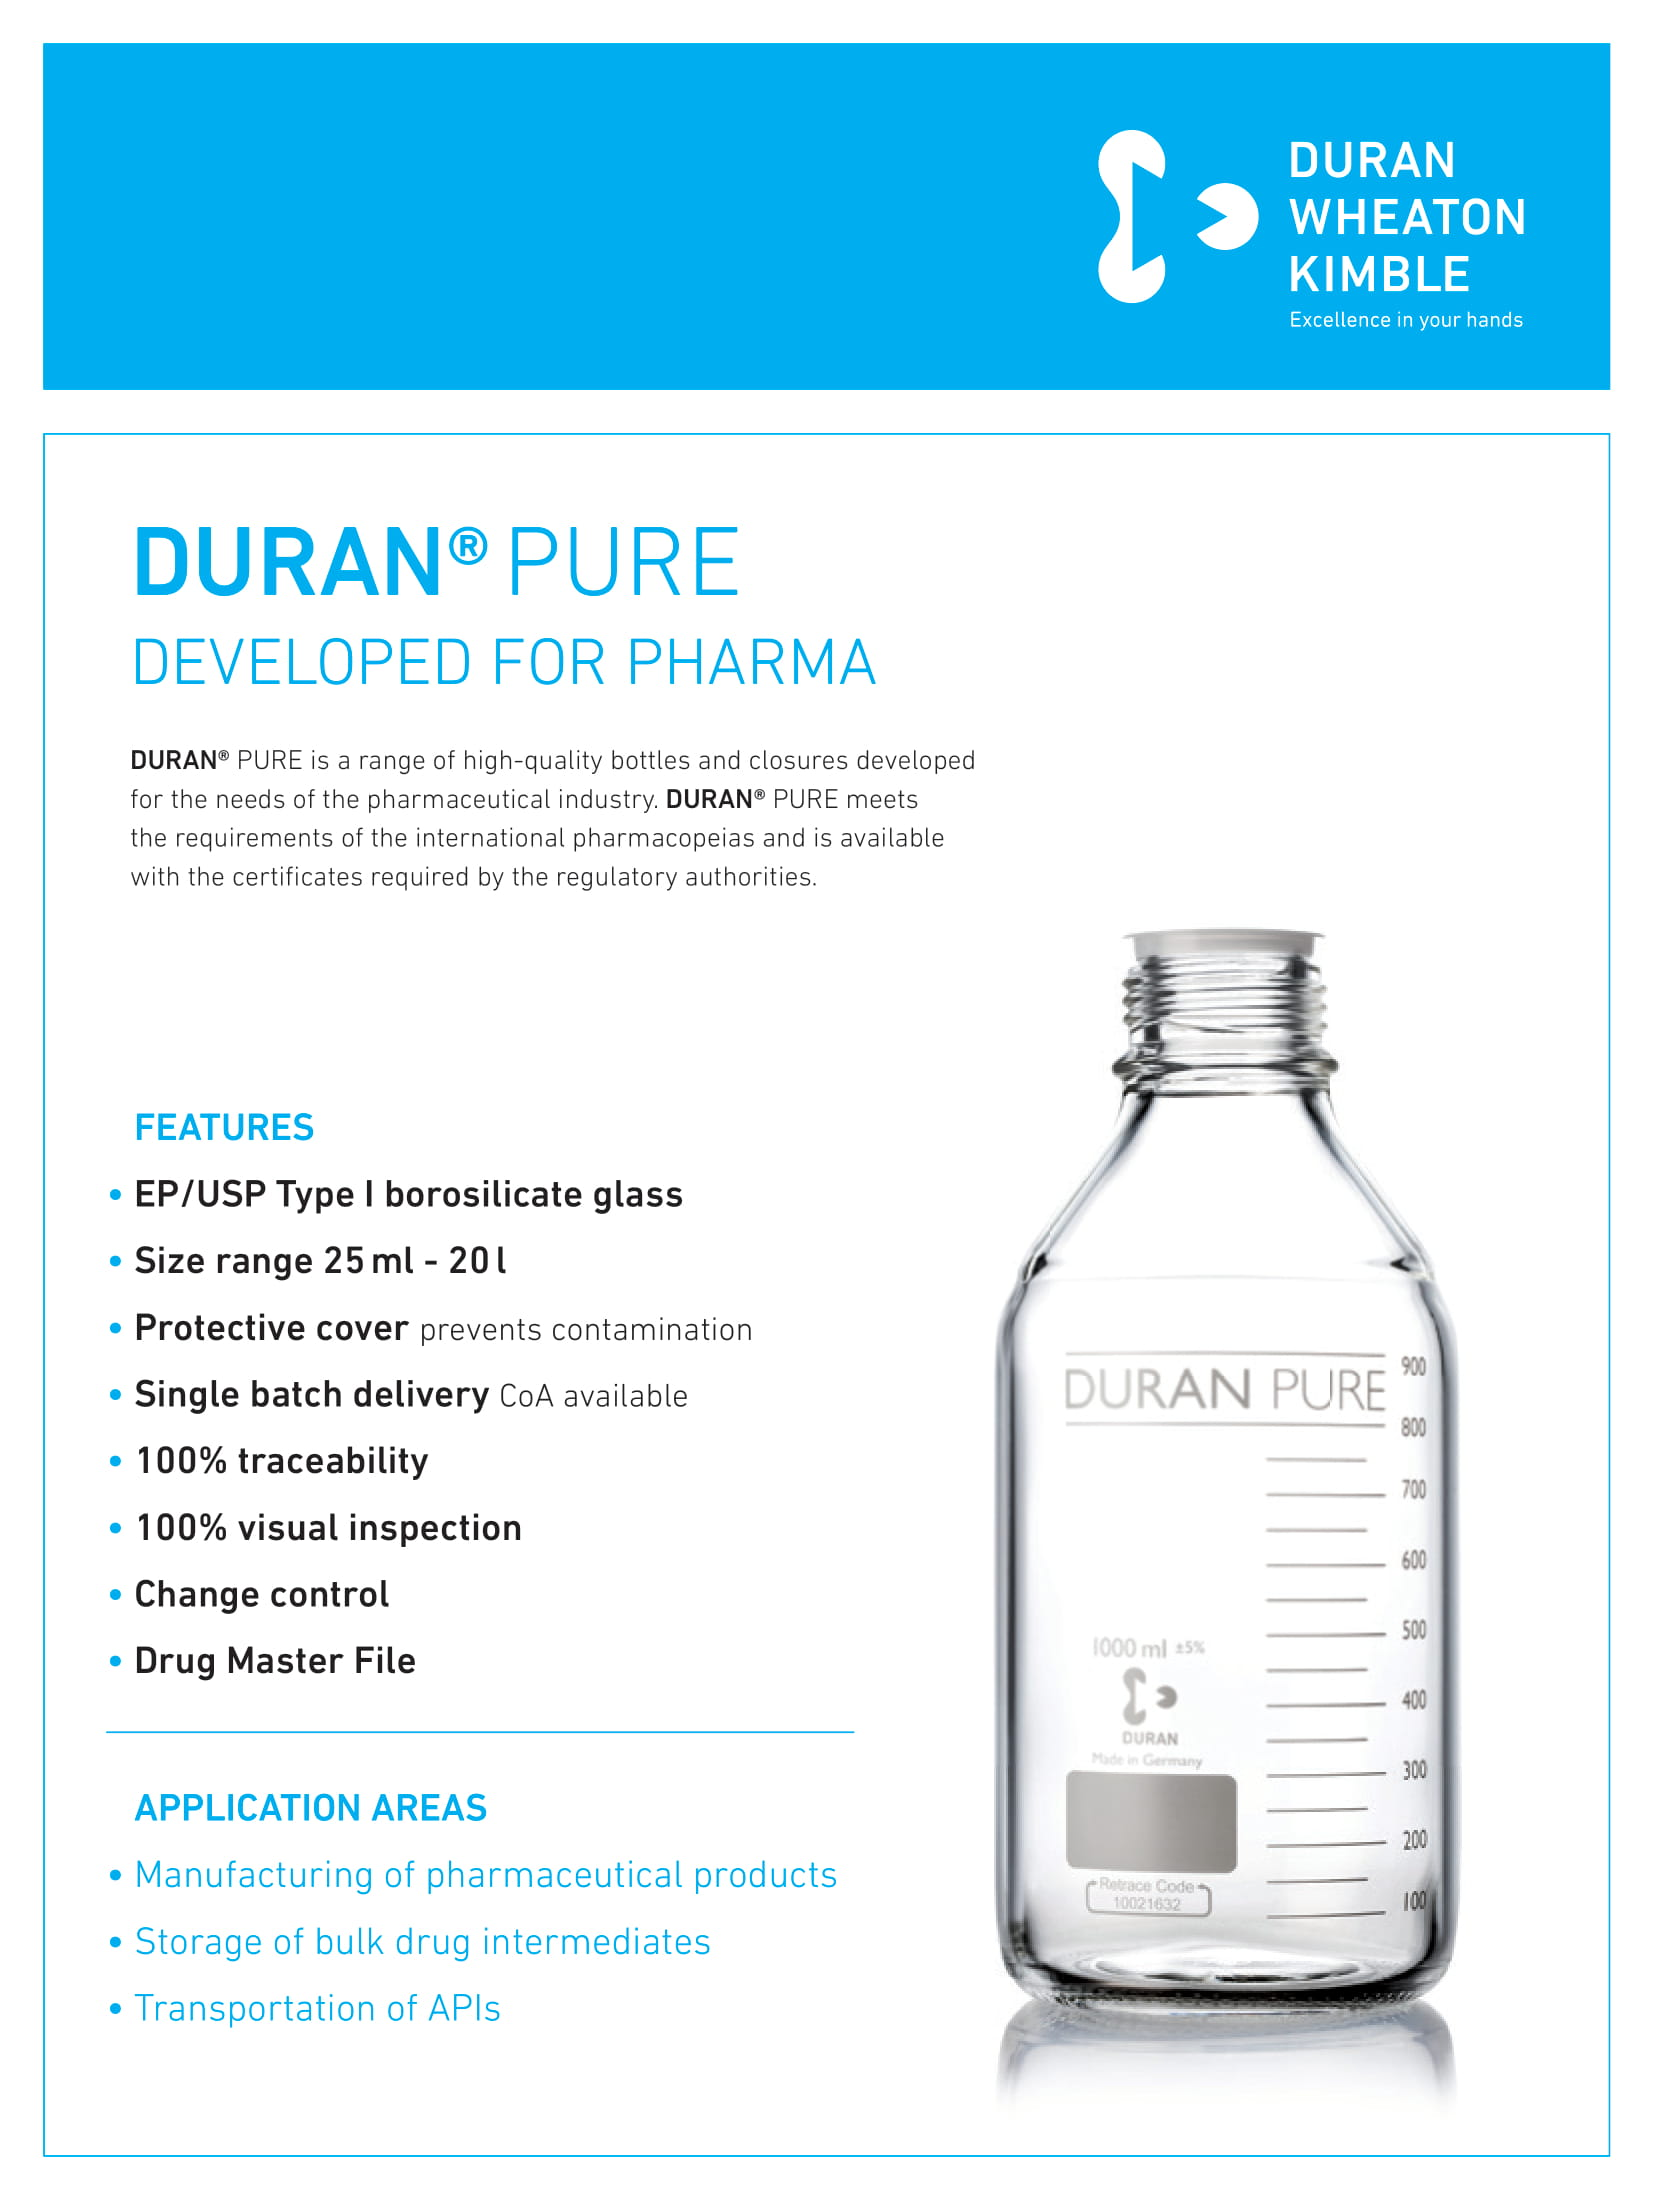 DURAN® PURE GL 45 - Developed for Pharma